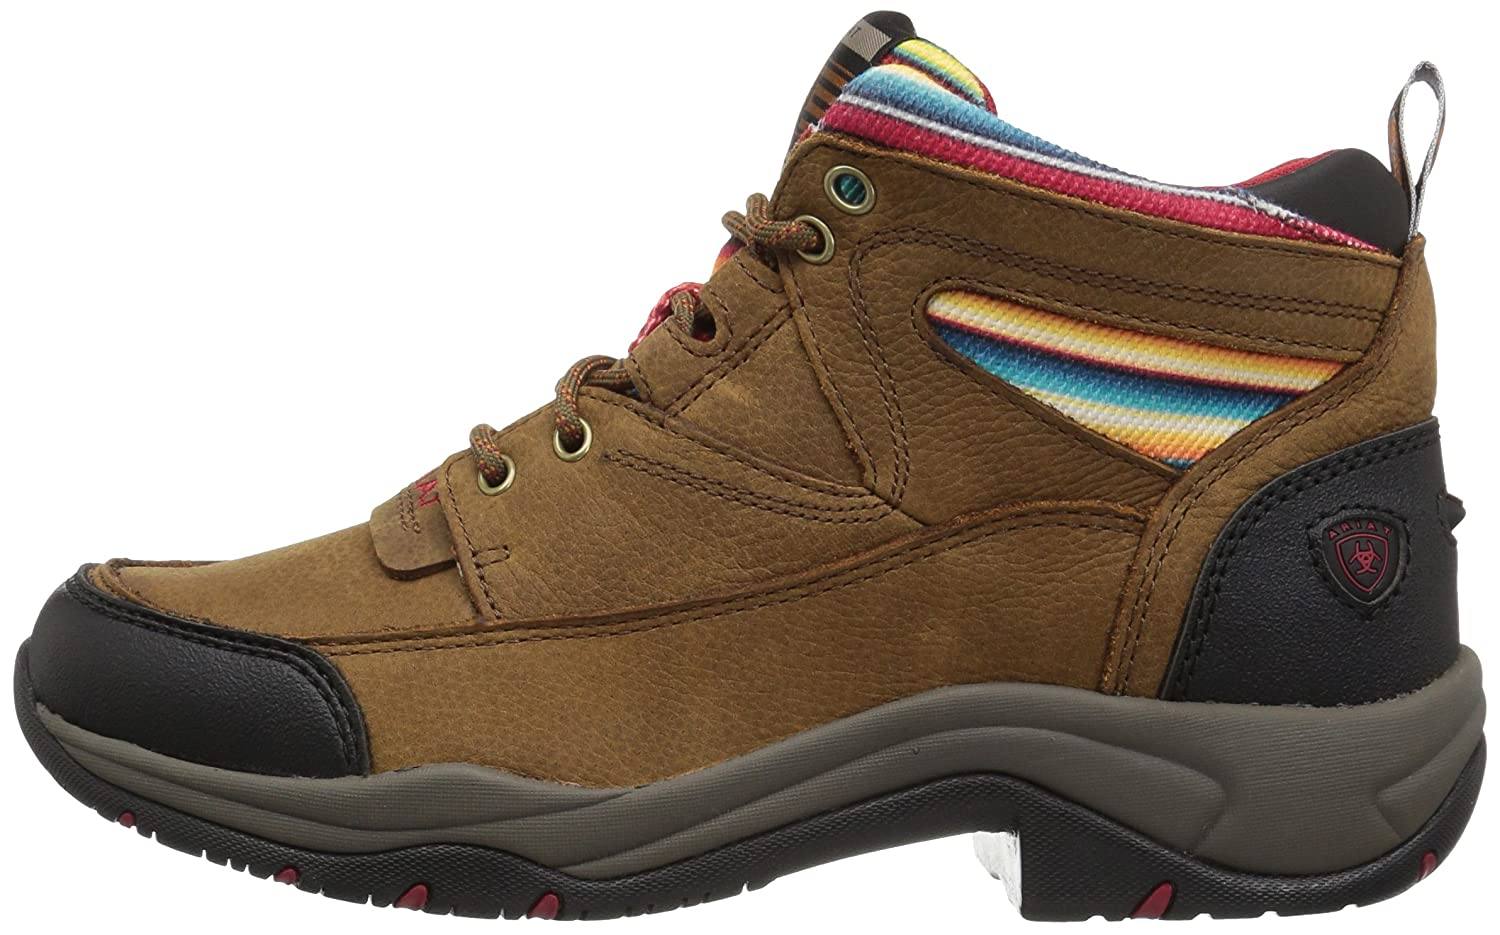 Ariat B01N16HGSL Women's Terrain Work Boot B01N16HGSL Ariat 7.5 B(M) US|Walnut/Serape c206ad